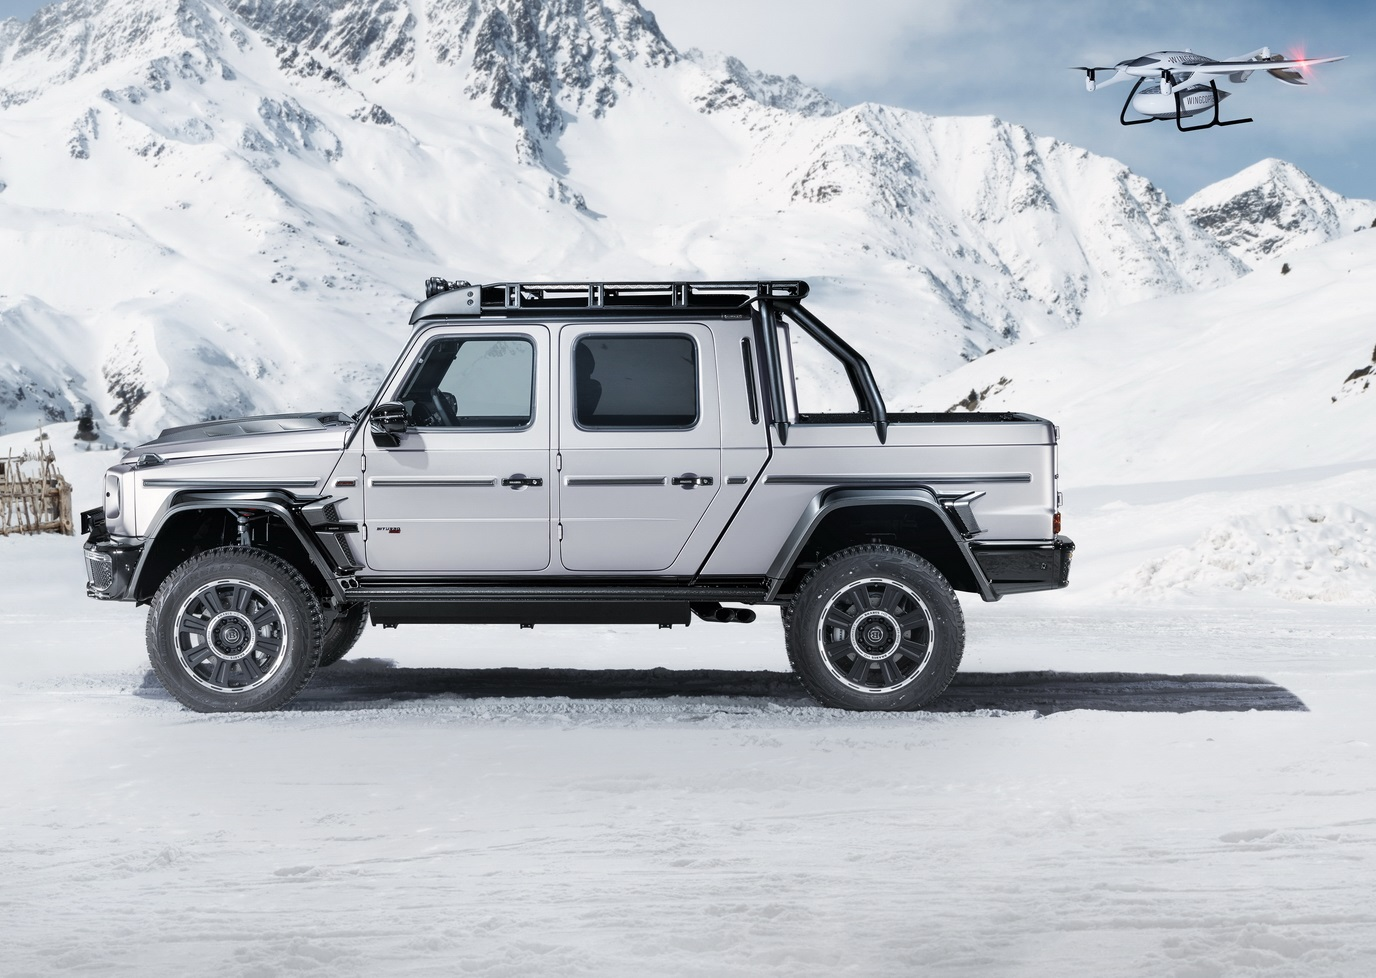 Brabus 800 Adventure XLP Side